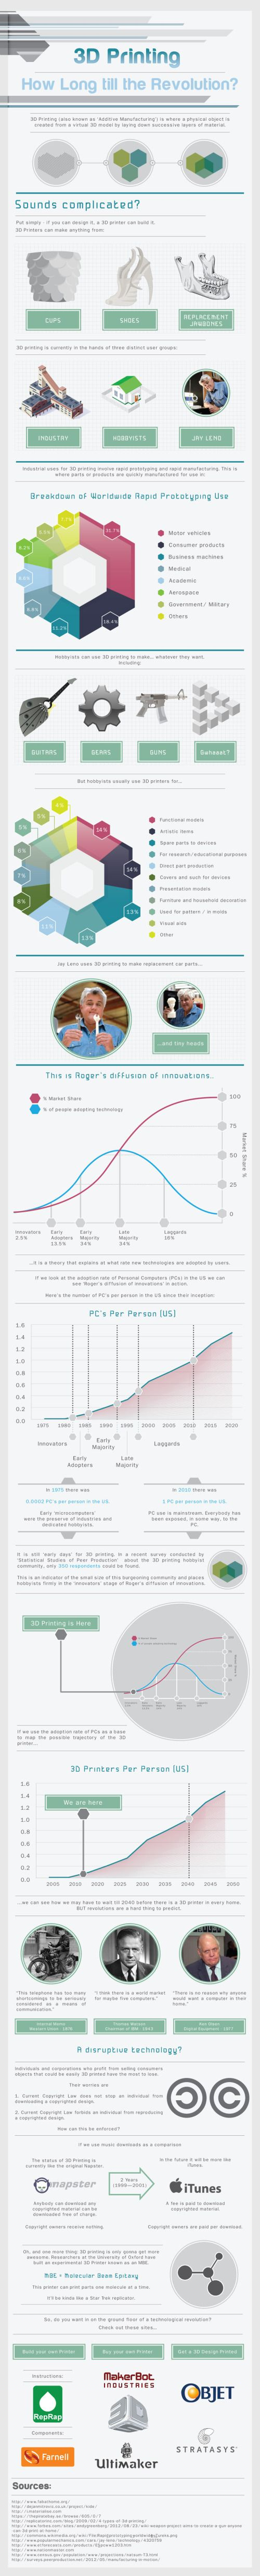 Daily Infographic | A New Infographic Every Day | Data Visualization, Information Design and Infographics | page 2